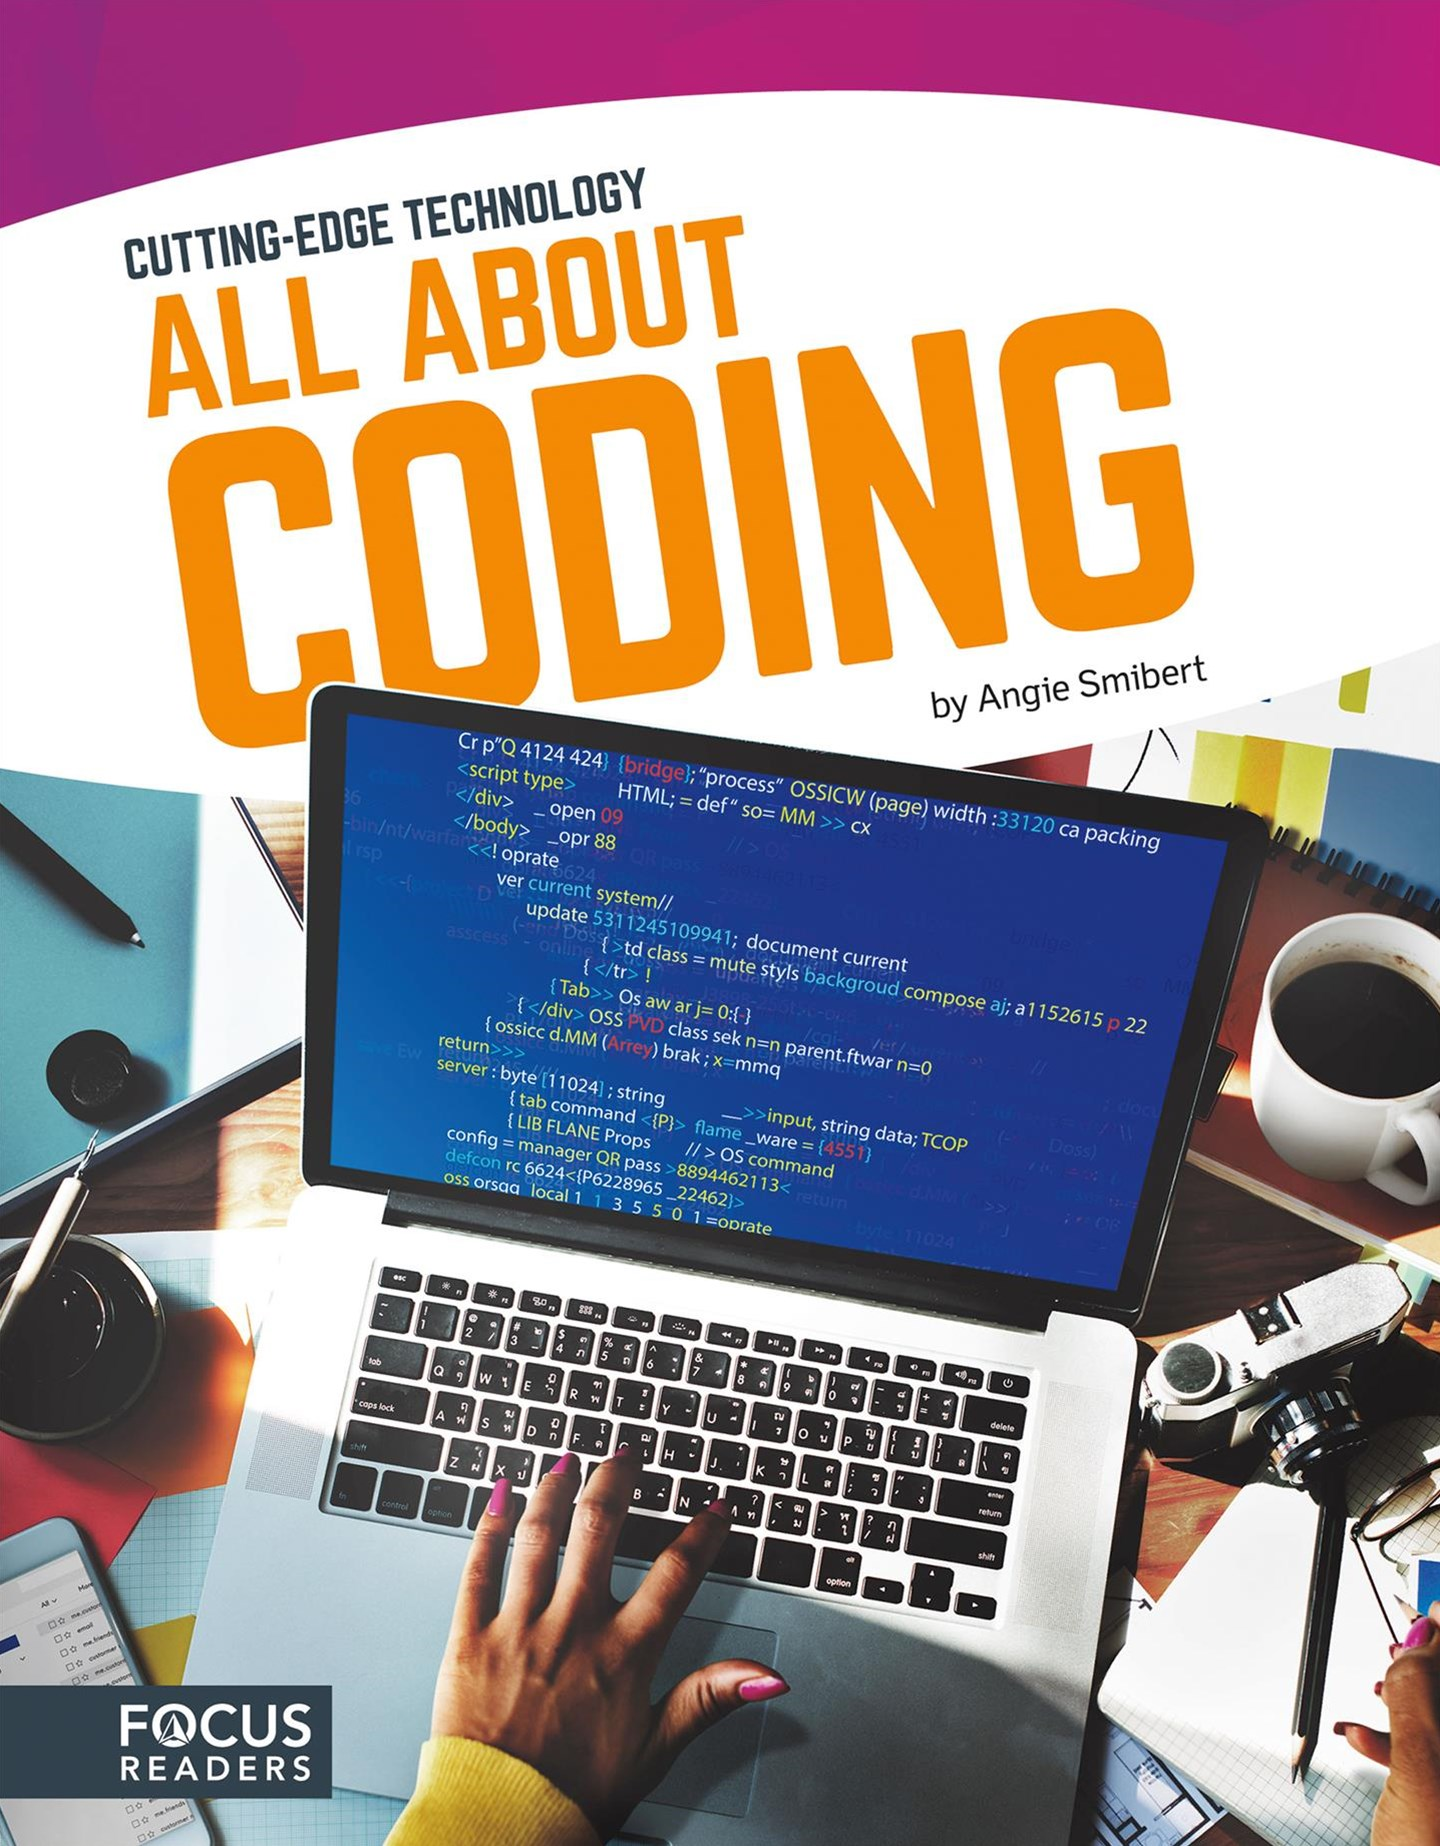 All About Coding -  Cutting-Edge Technology